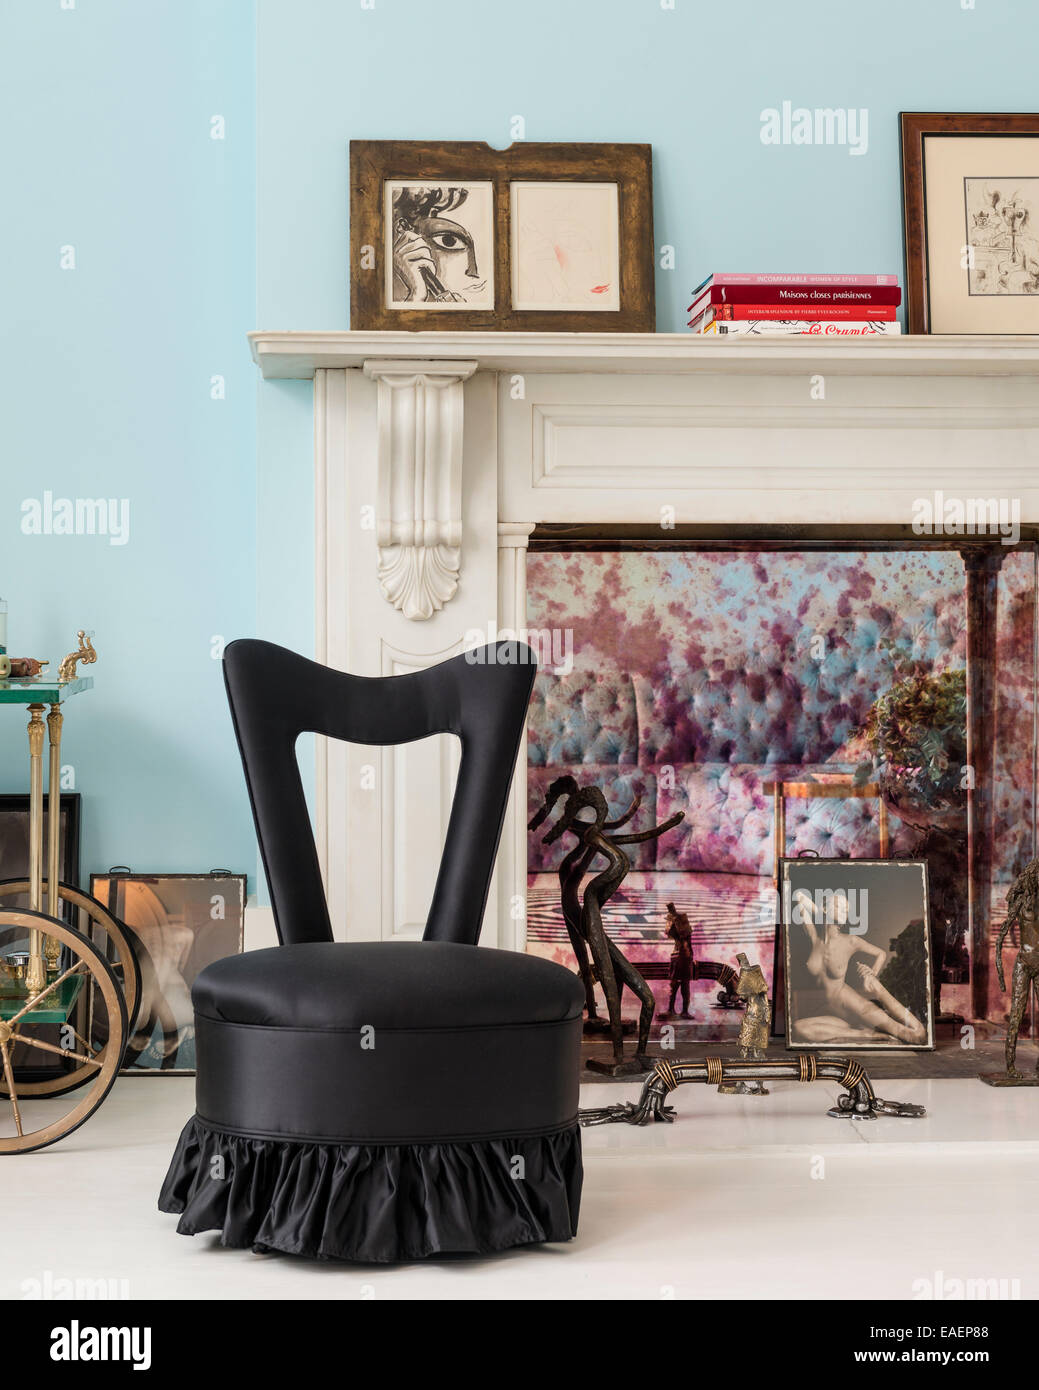 Black Silk Upholstered Chair In Front Of Original Marble Fireplace   Stock  Image